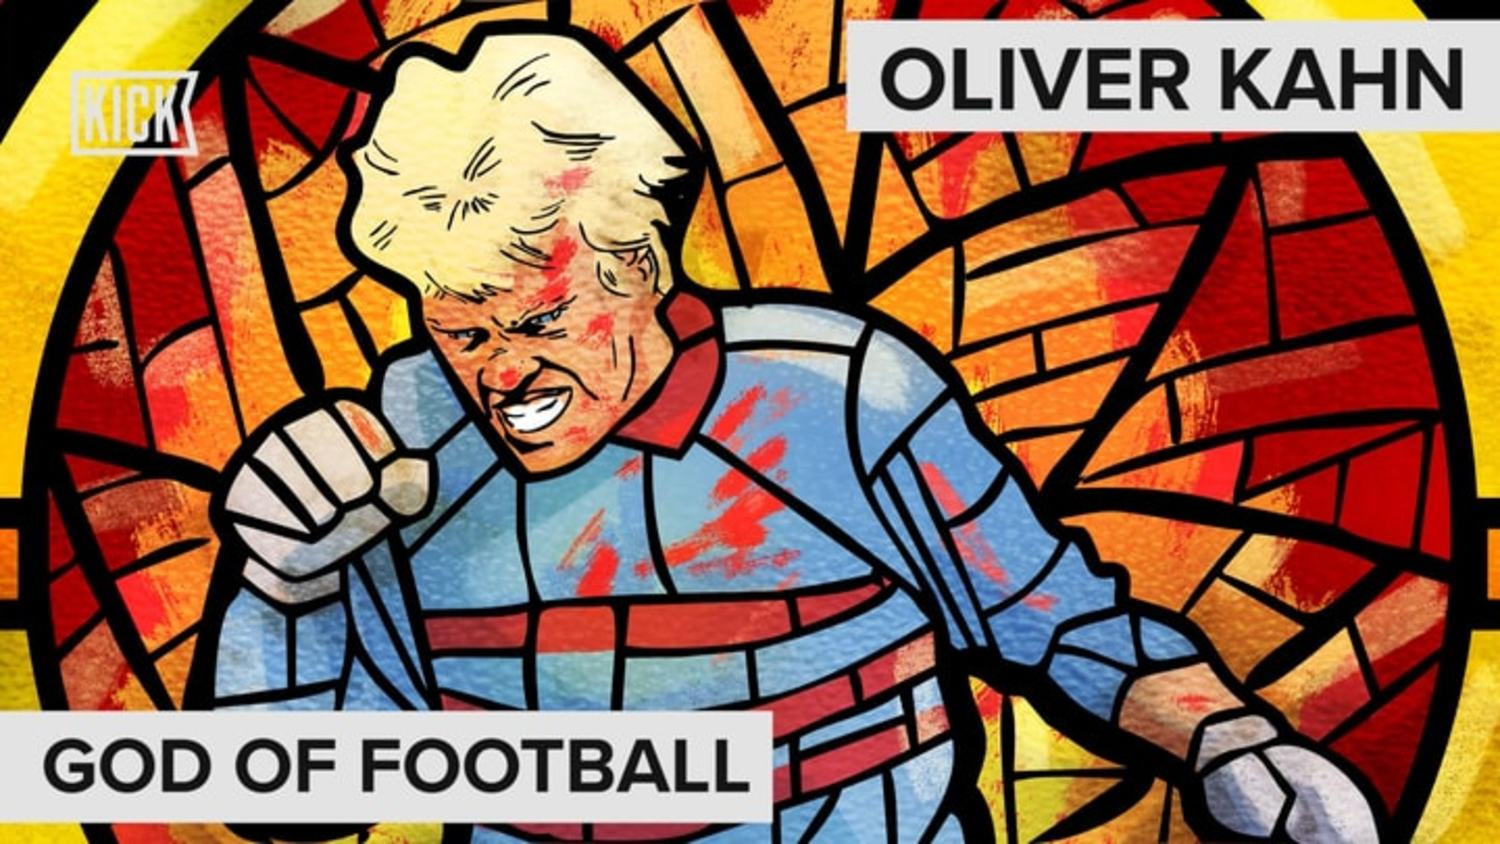 Oliver Kahn — God of Football